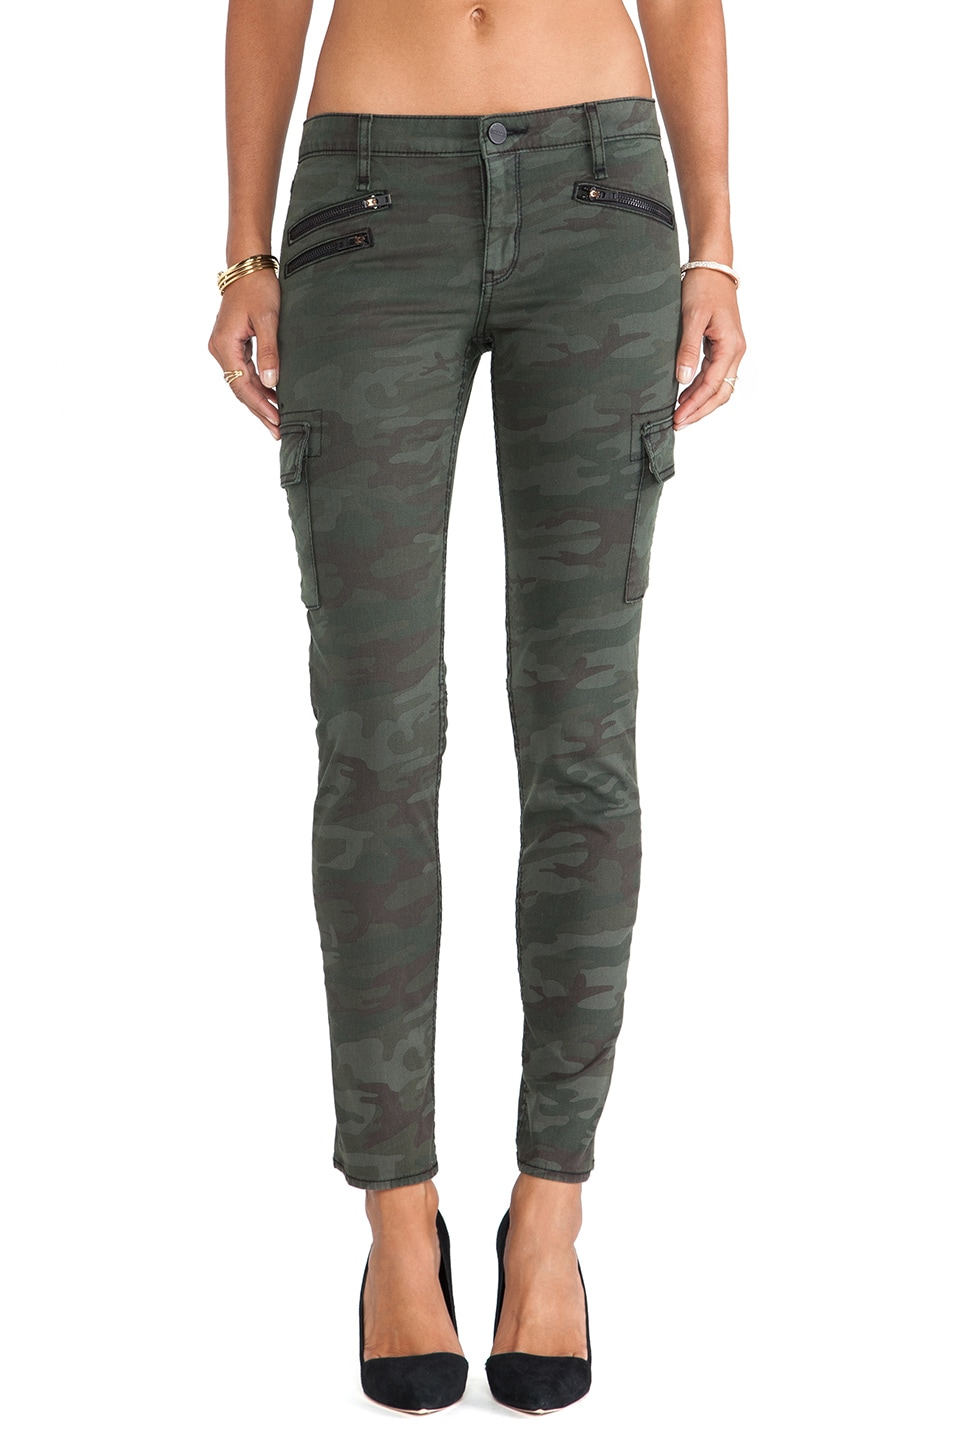 Sanctuary Heritage Civilian Cargo Pants in Hunter